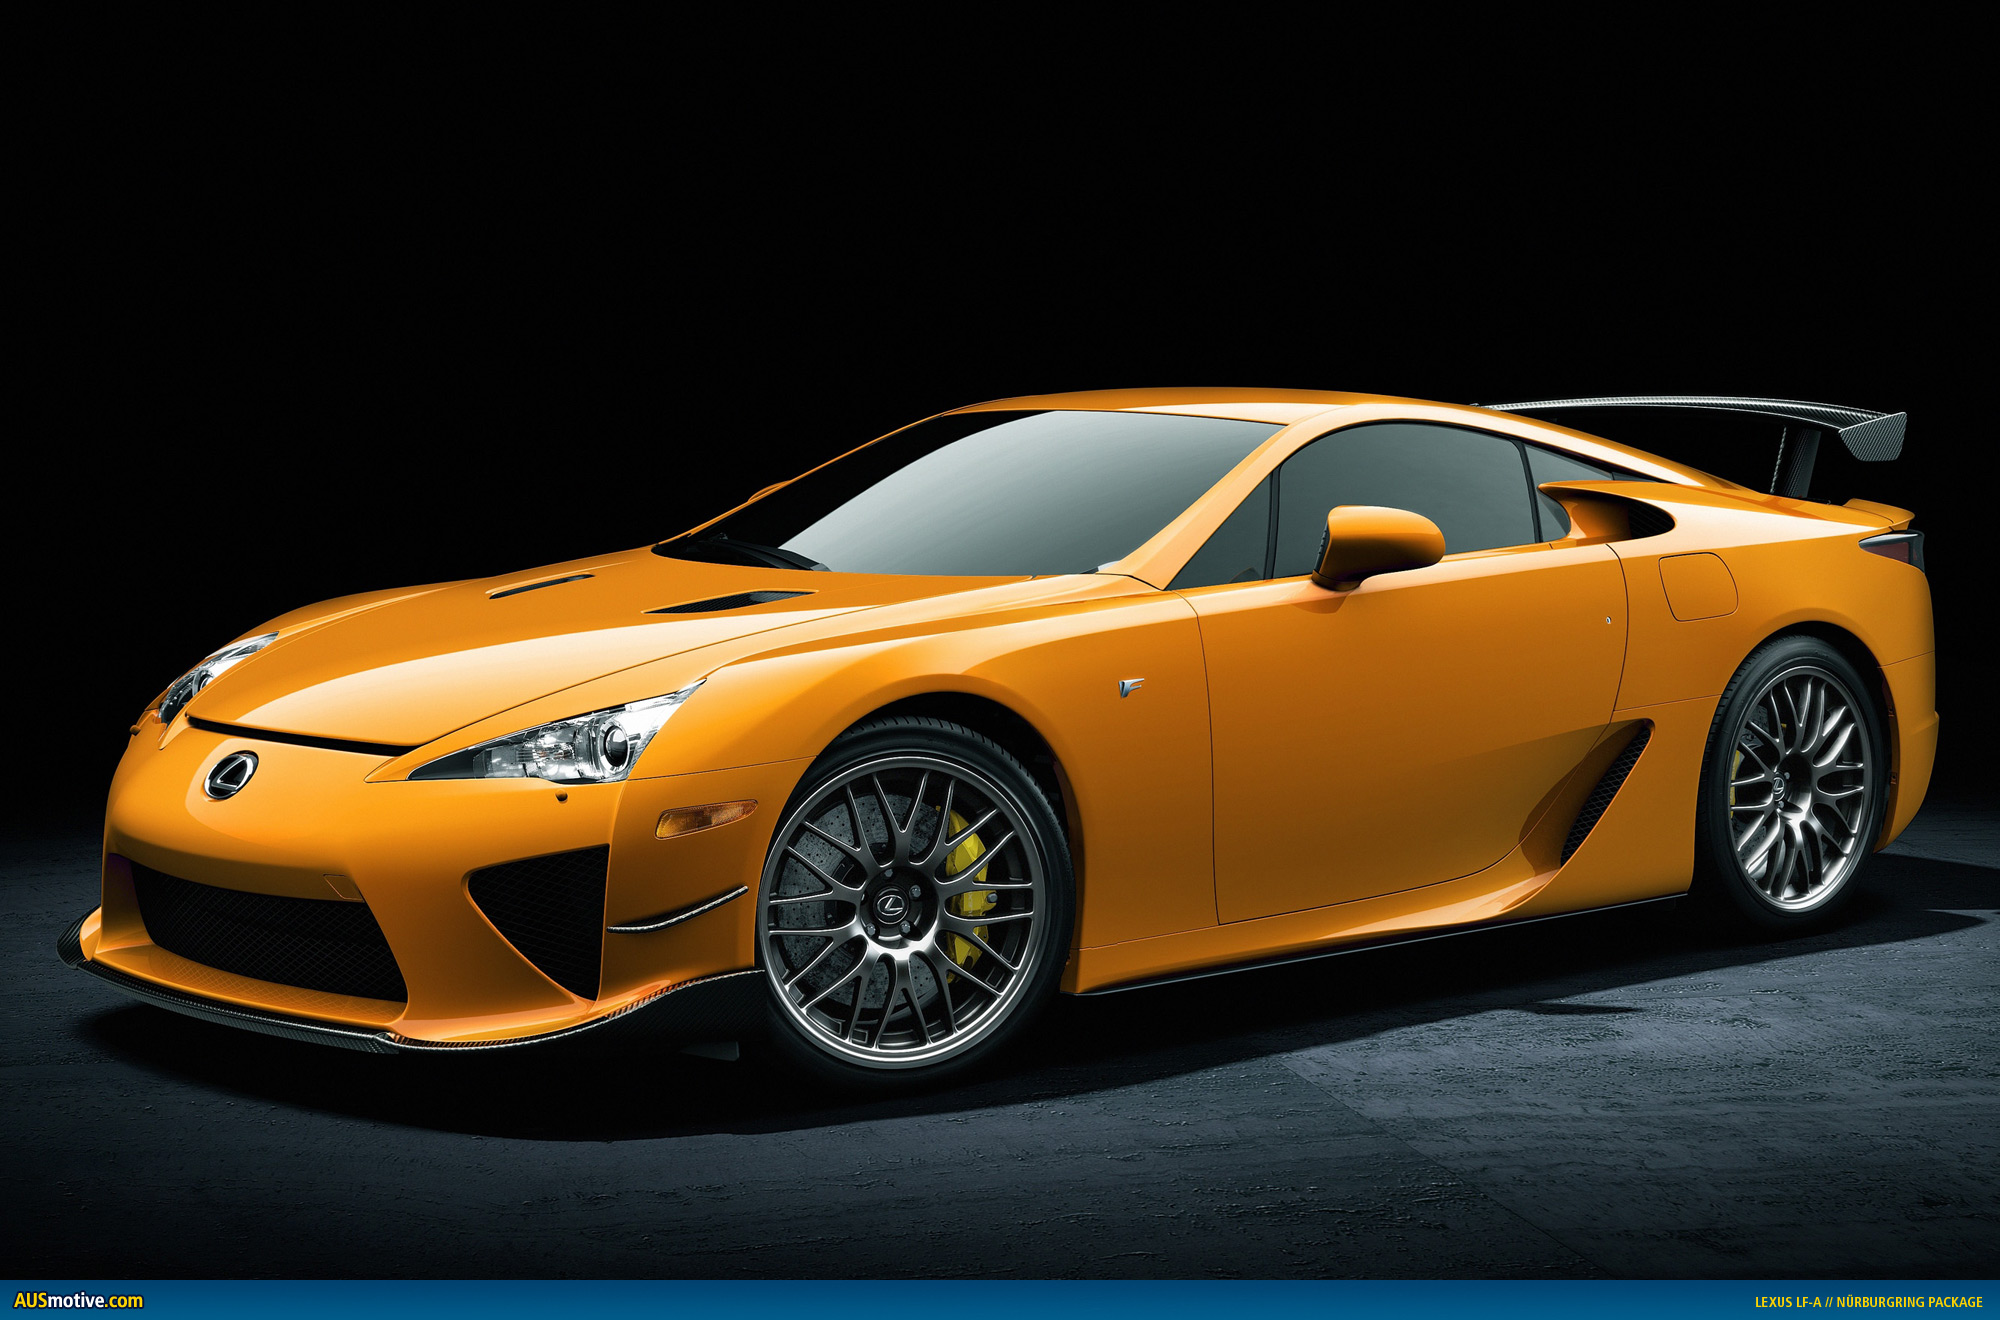 AUSmotive Is anyone ing the Lexus LFA Nürburgring Package